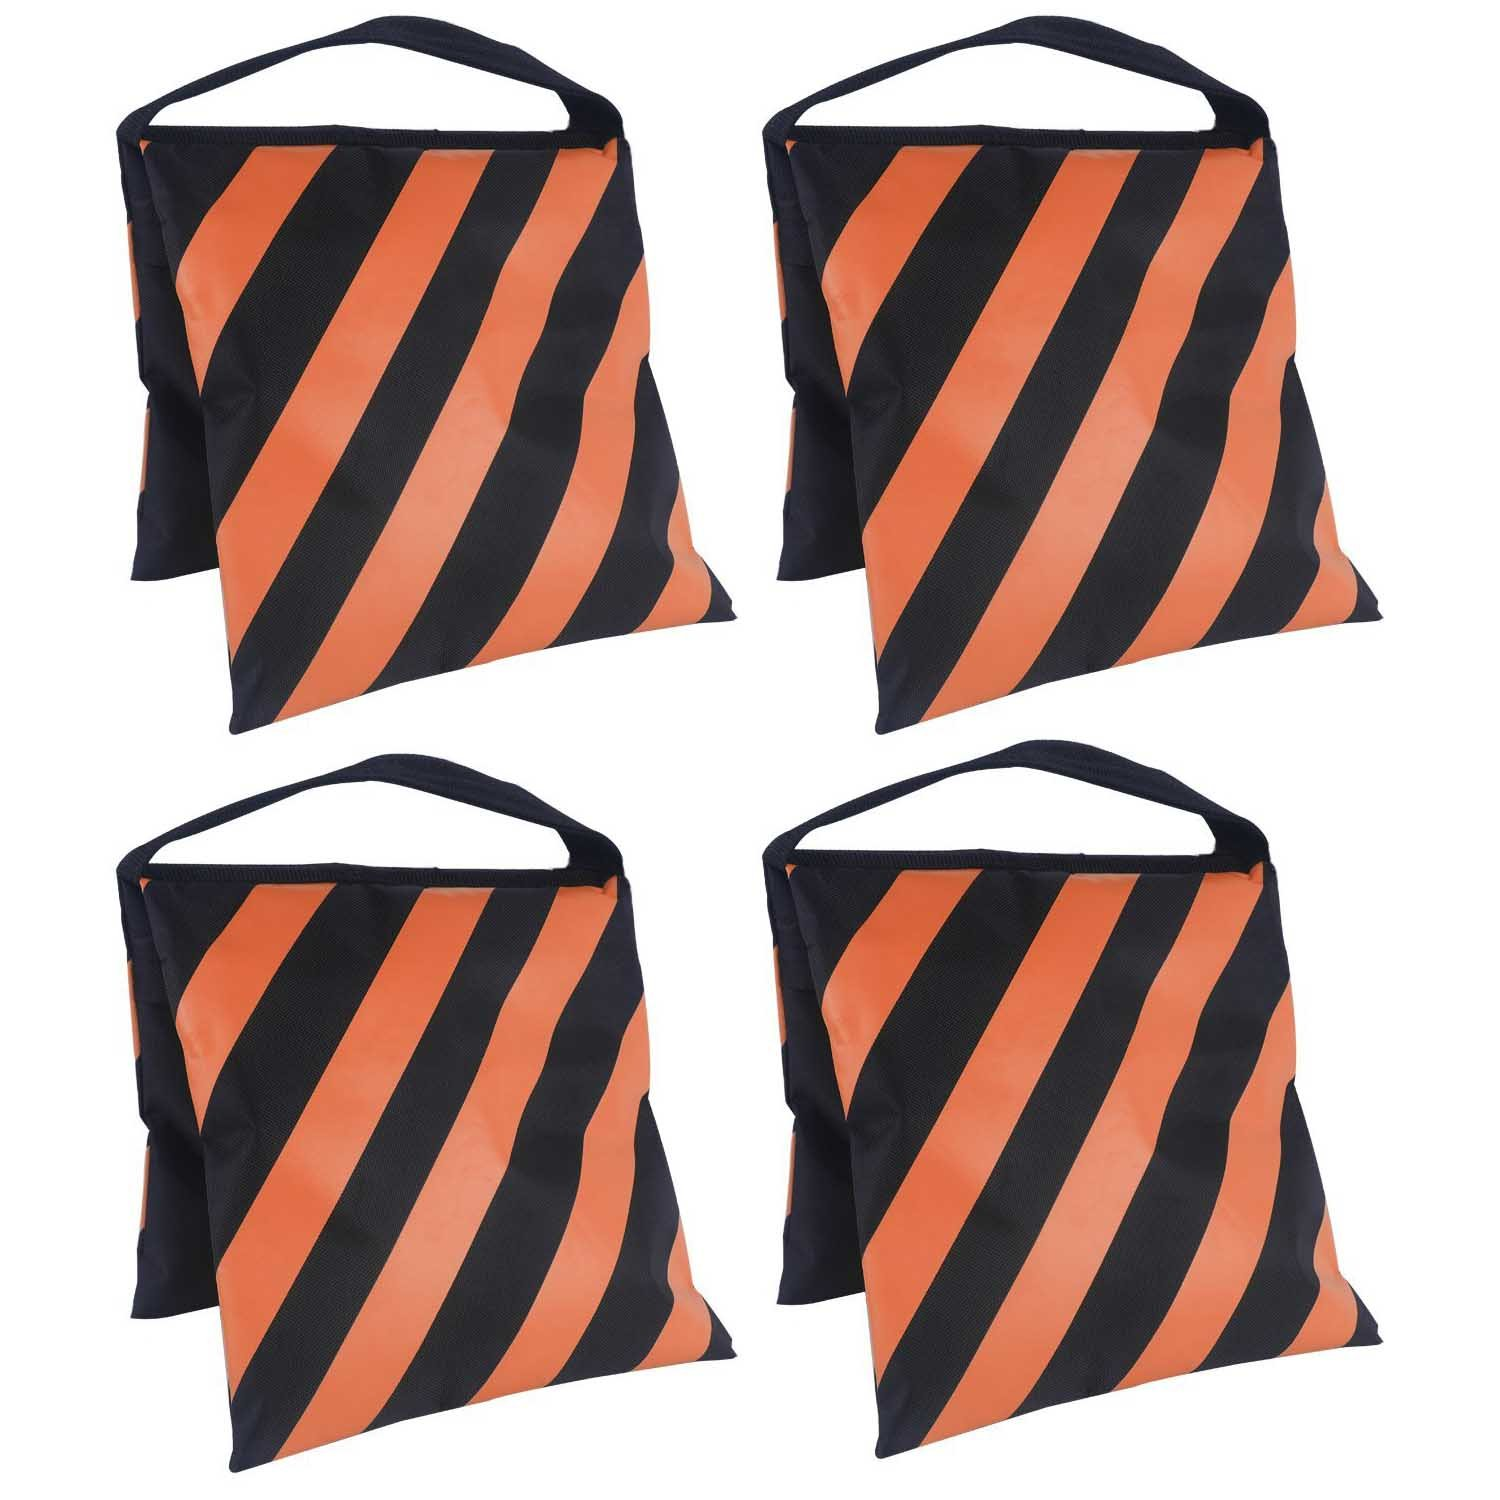 Heavy Duty Sand Bag Photography Studio Video Stage Film Sandbag for Light Stands Boom Arms Tripods (Orange)